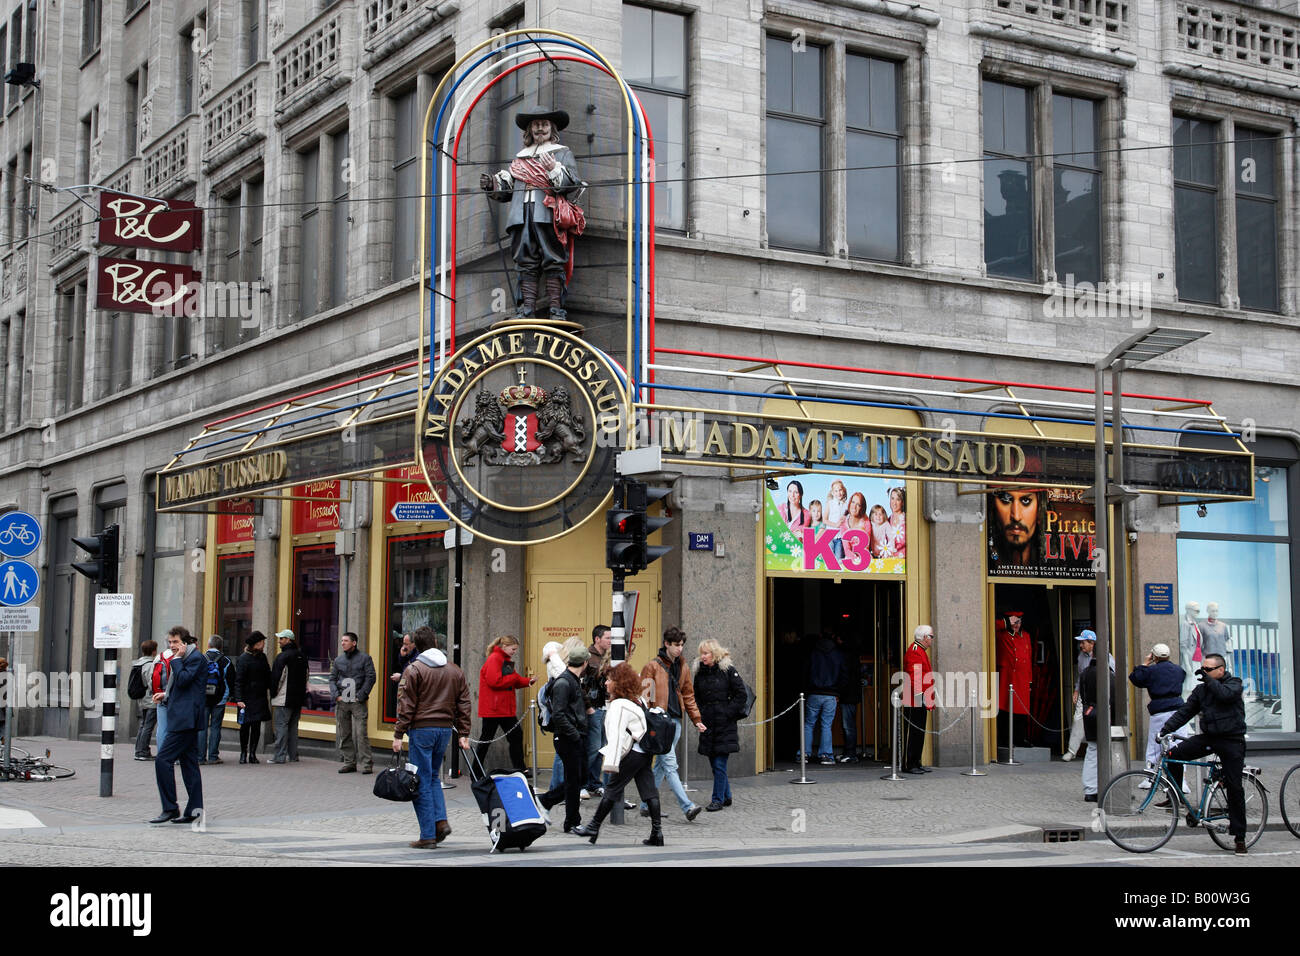 madame tussaud a popular attraction dam square amsterdam netherlands north holland europe - Stock Image